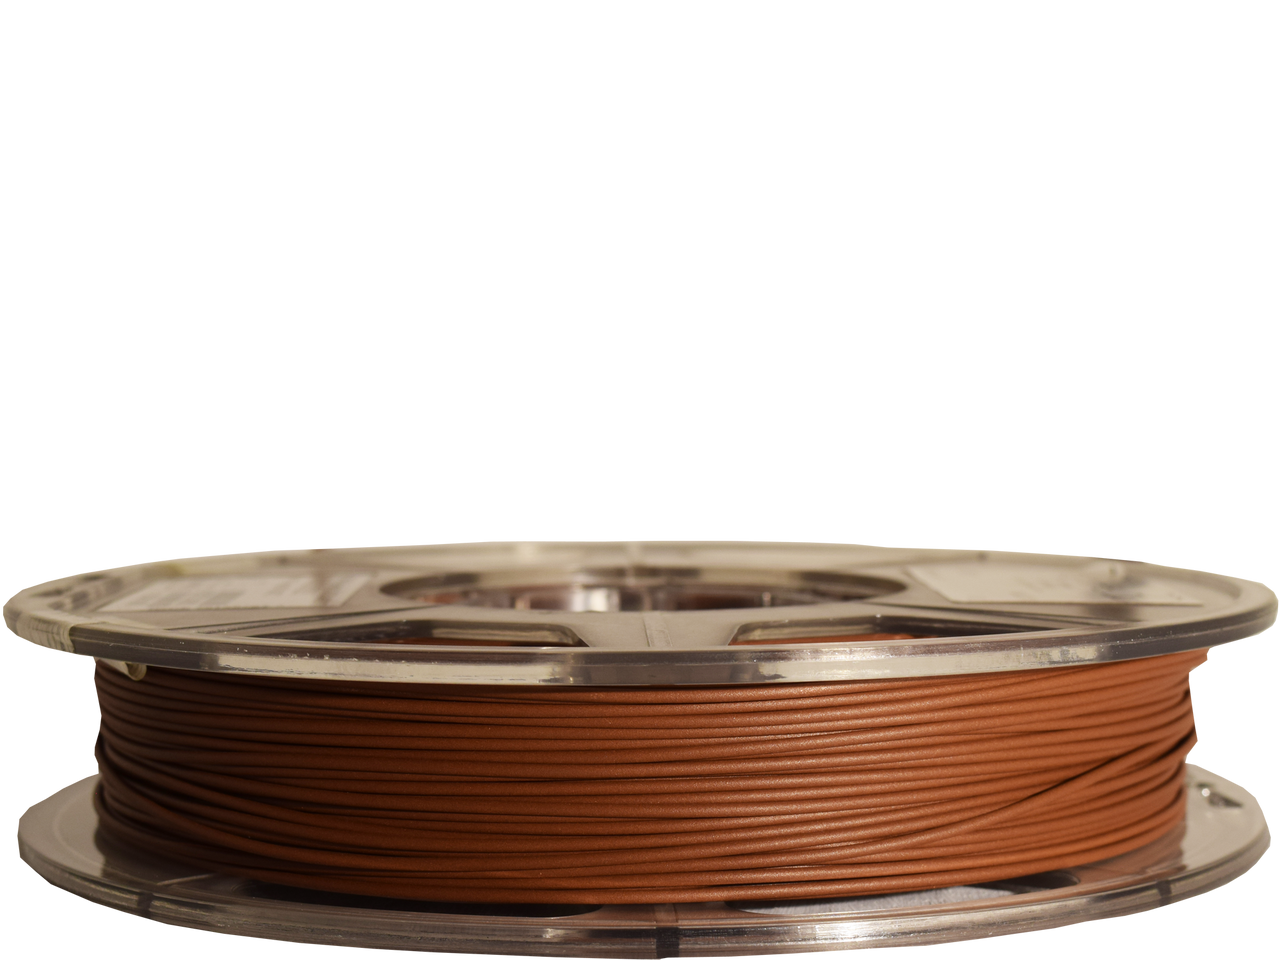 RePLAy 3D Copper Filament